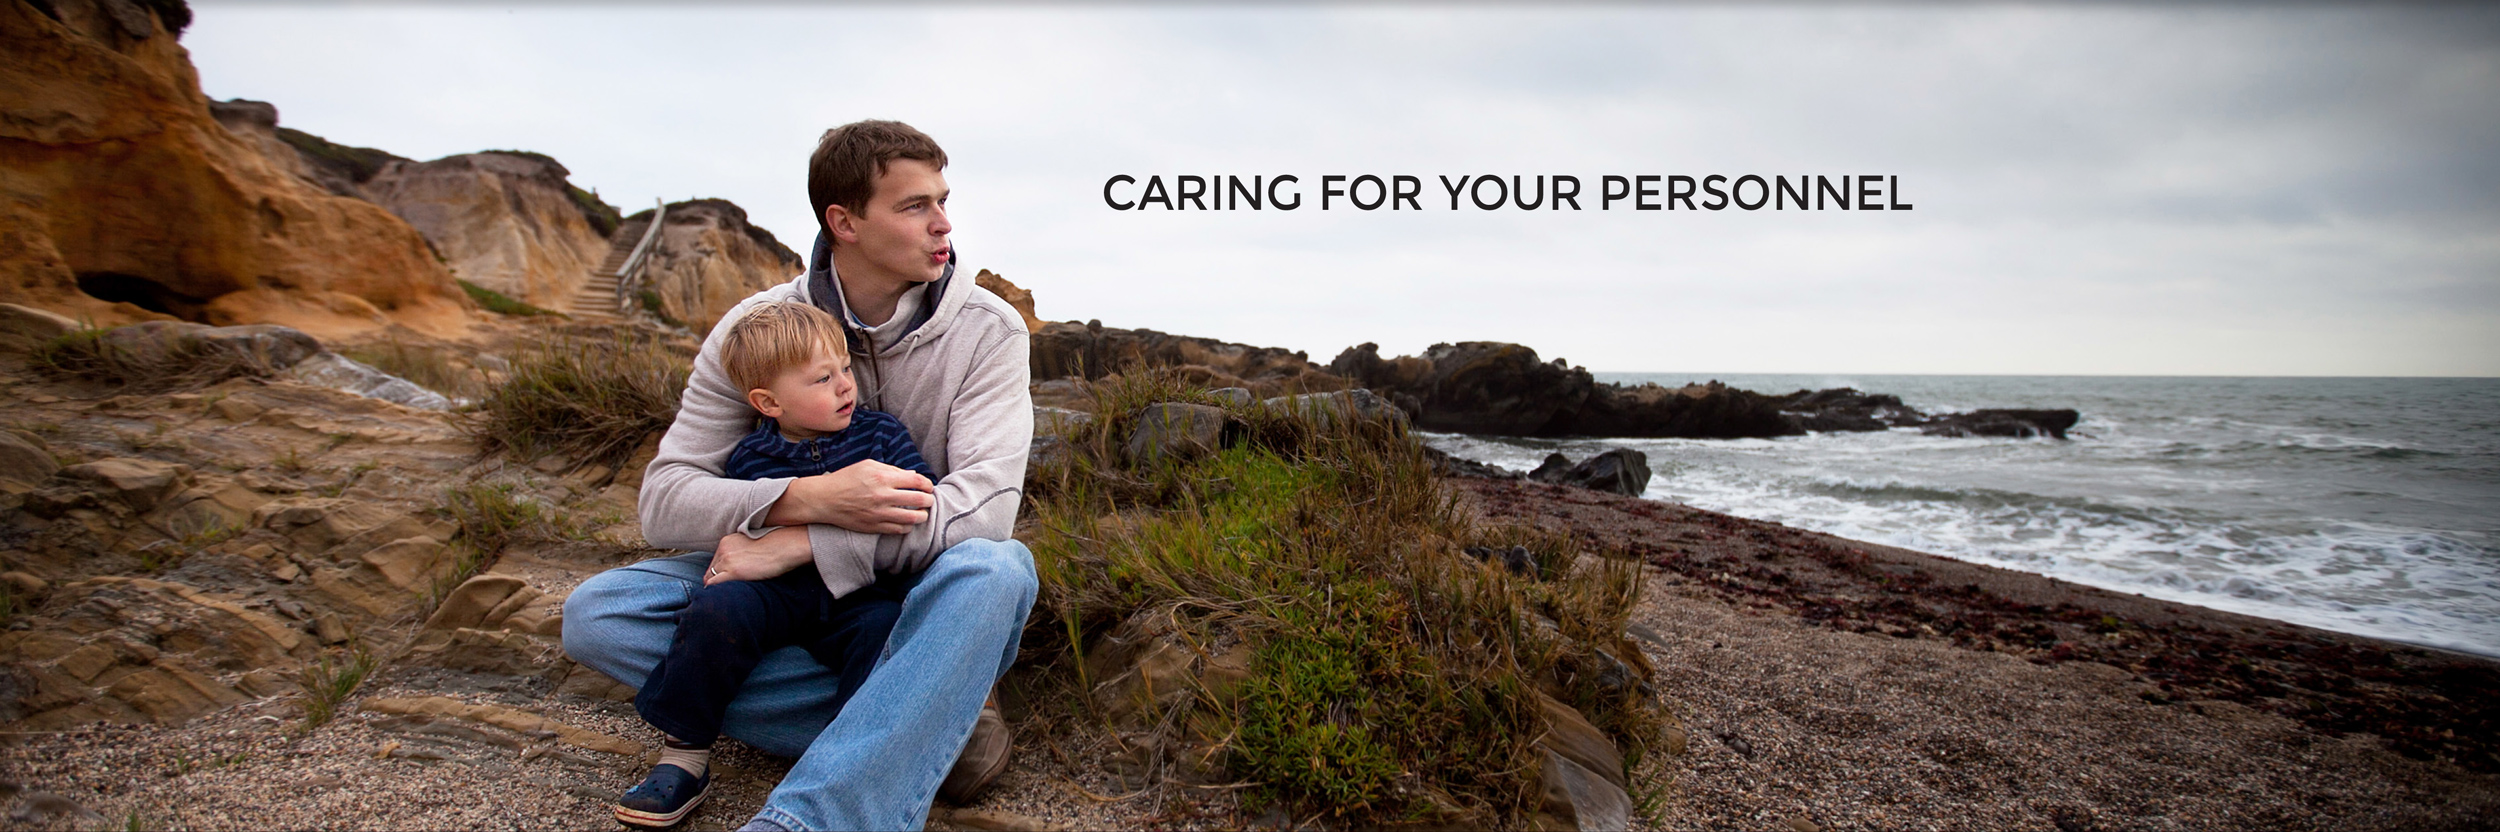 Caring for your personell